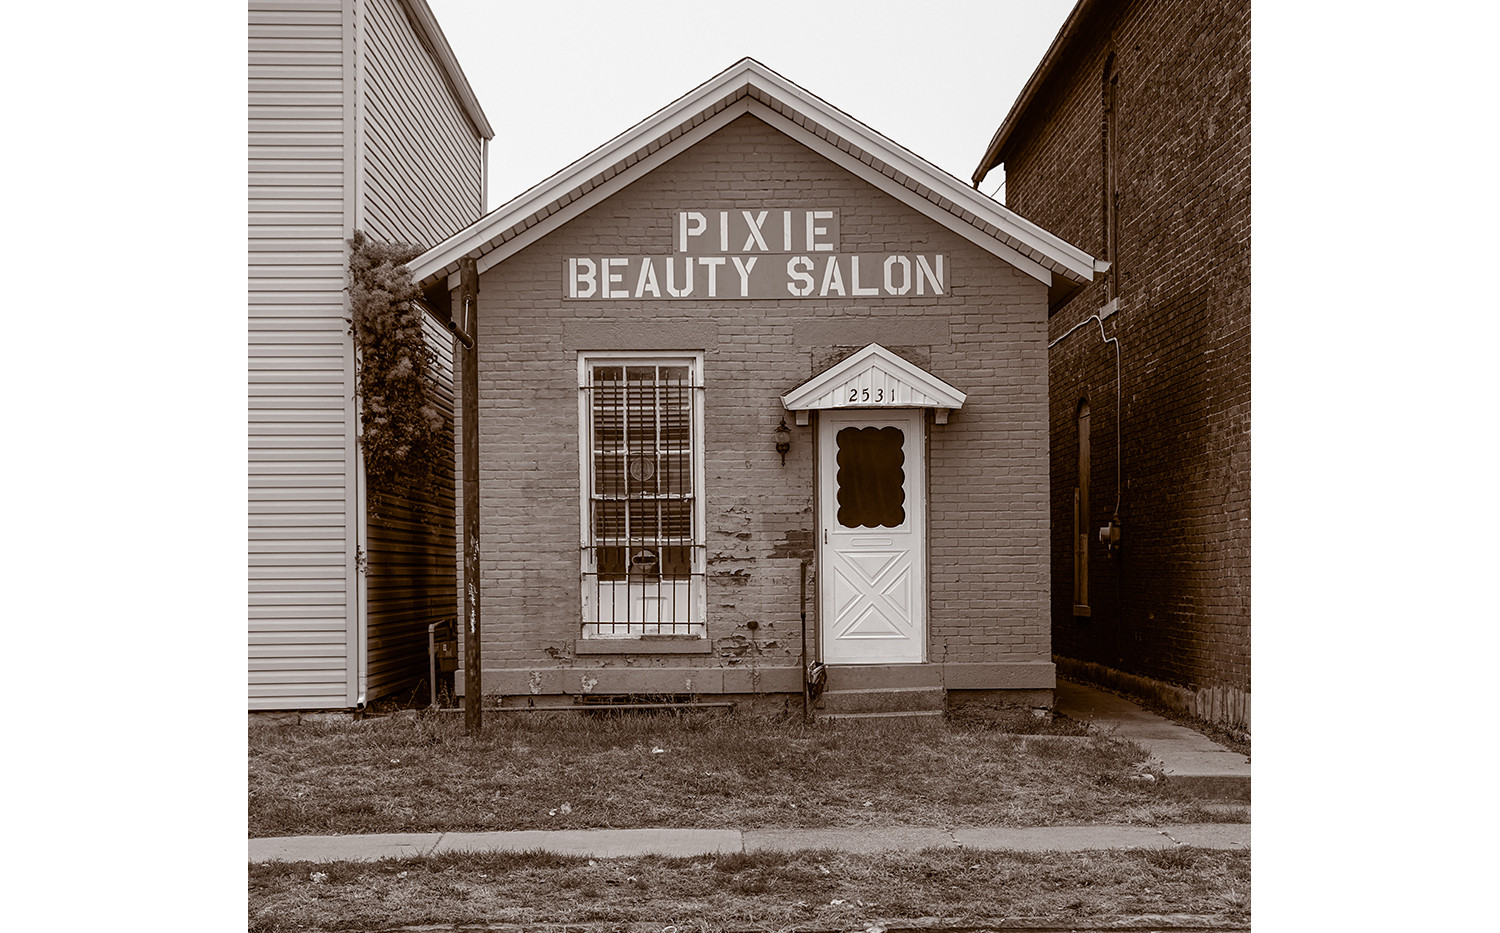 PIXIE BEAUTY SALON